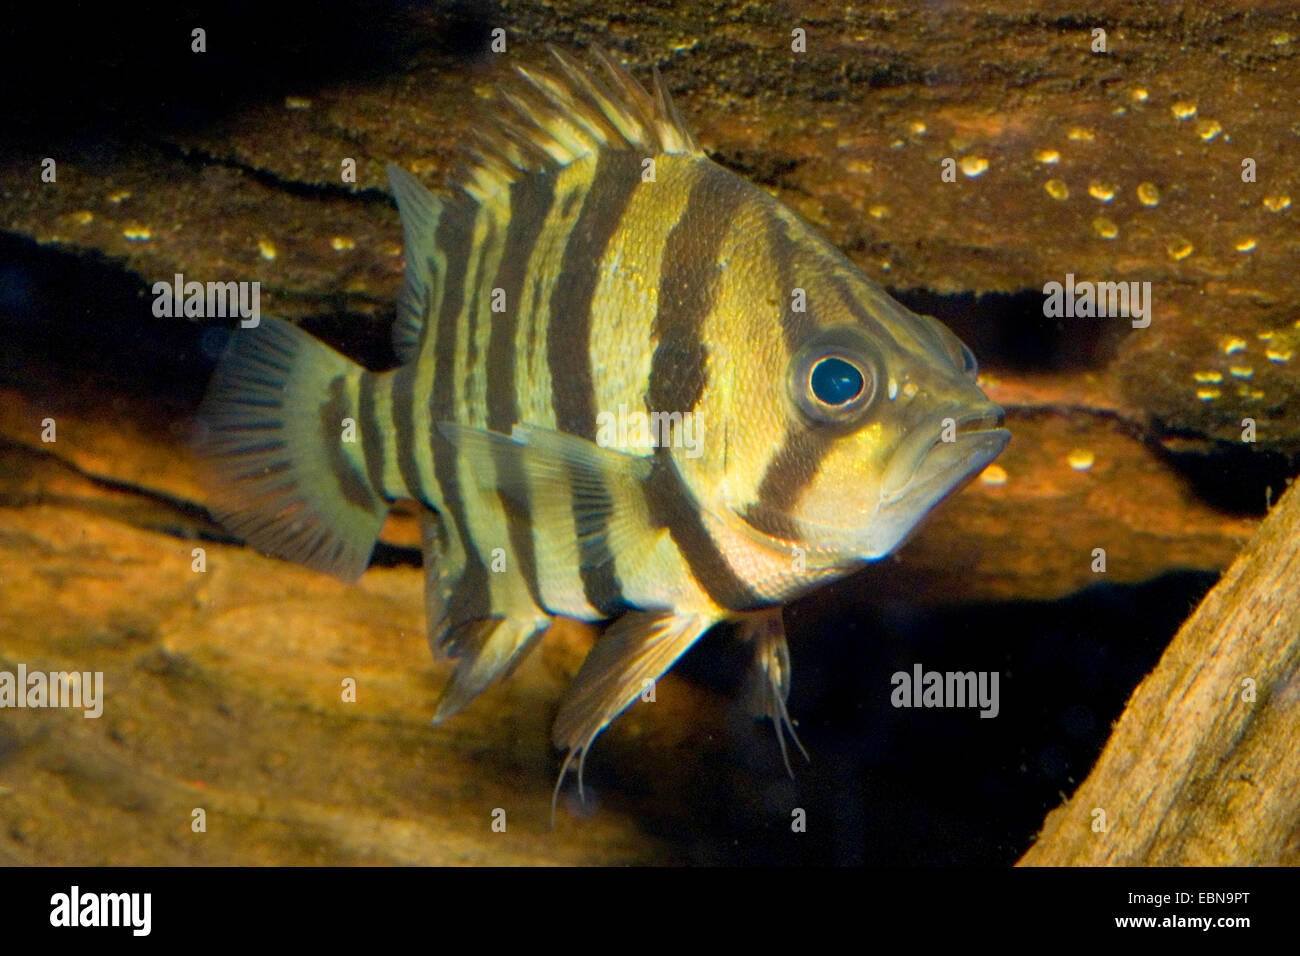 Tigerperch marée indien, quatre interdits Tiger fish (Datnioides quadrifasciatus, Coius quadrifasciatus), natation Photo Stock